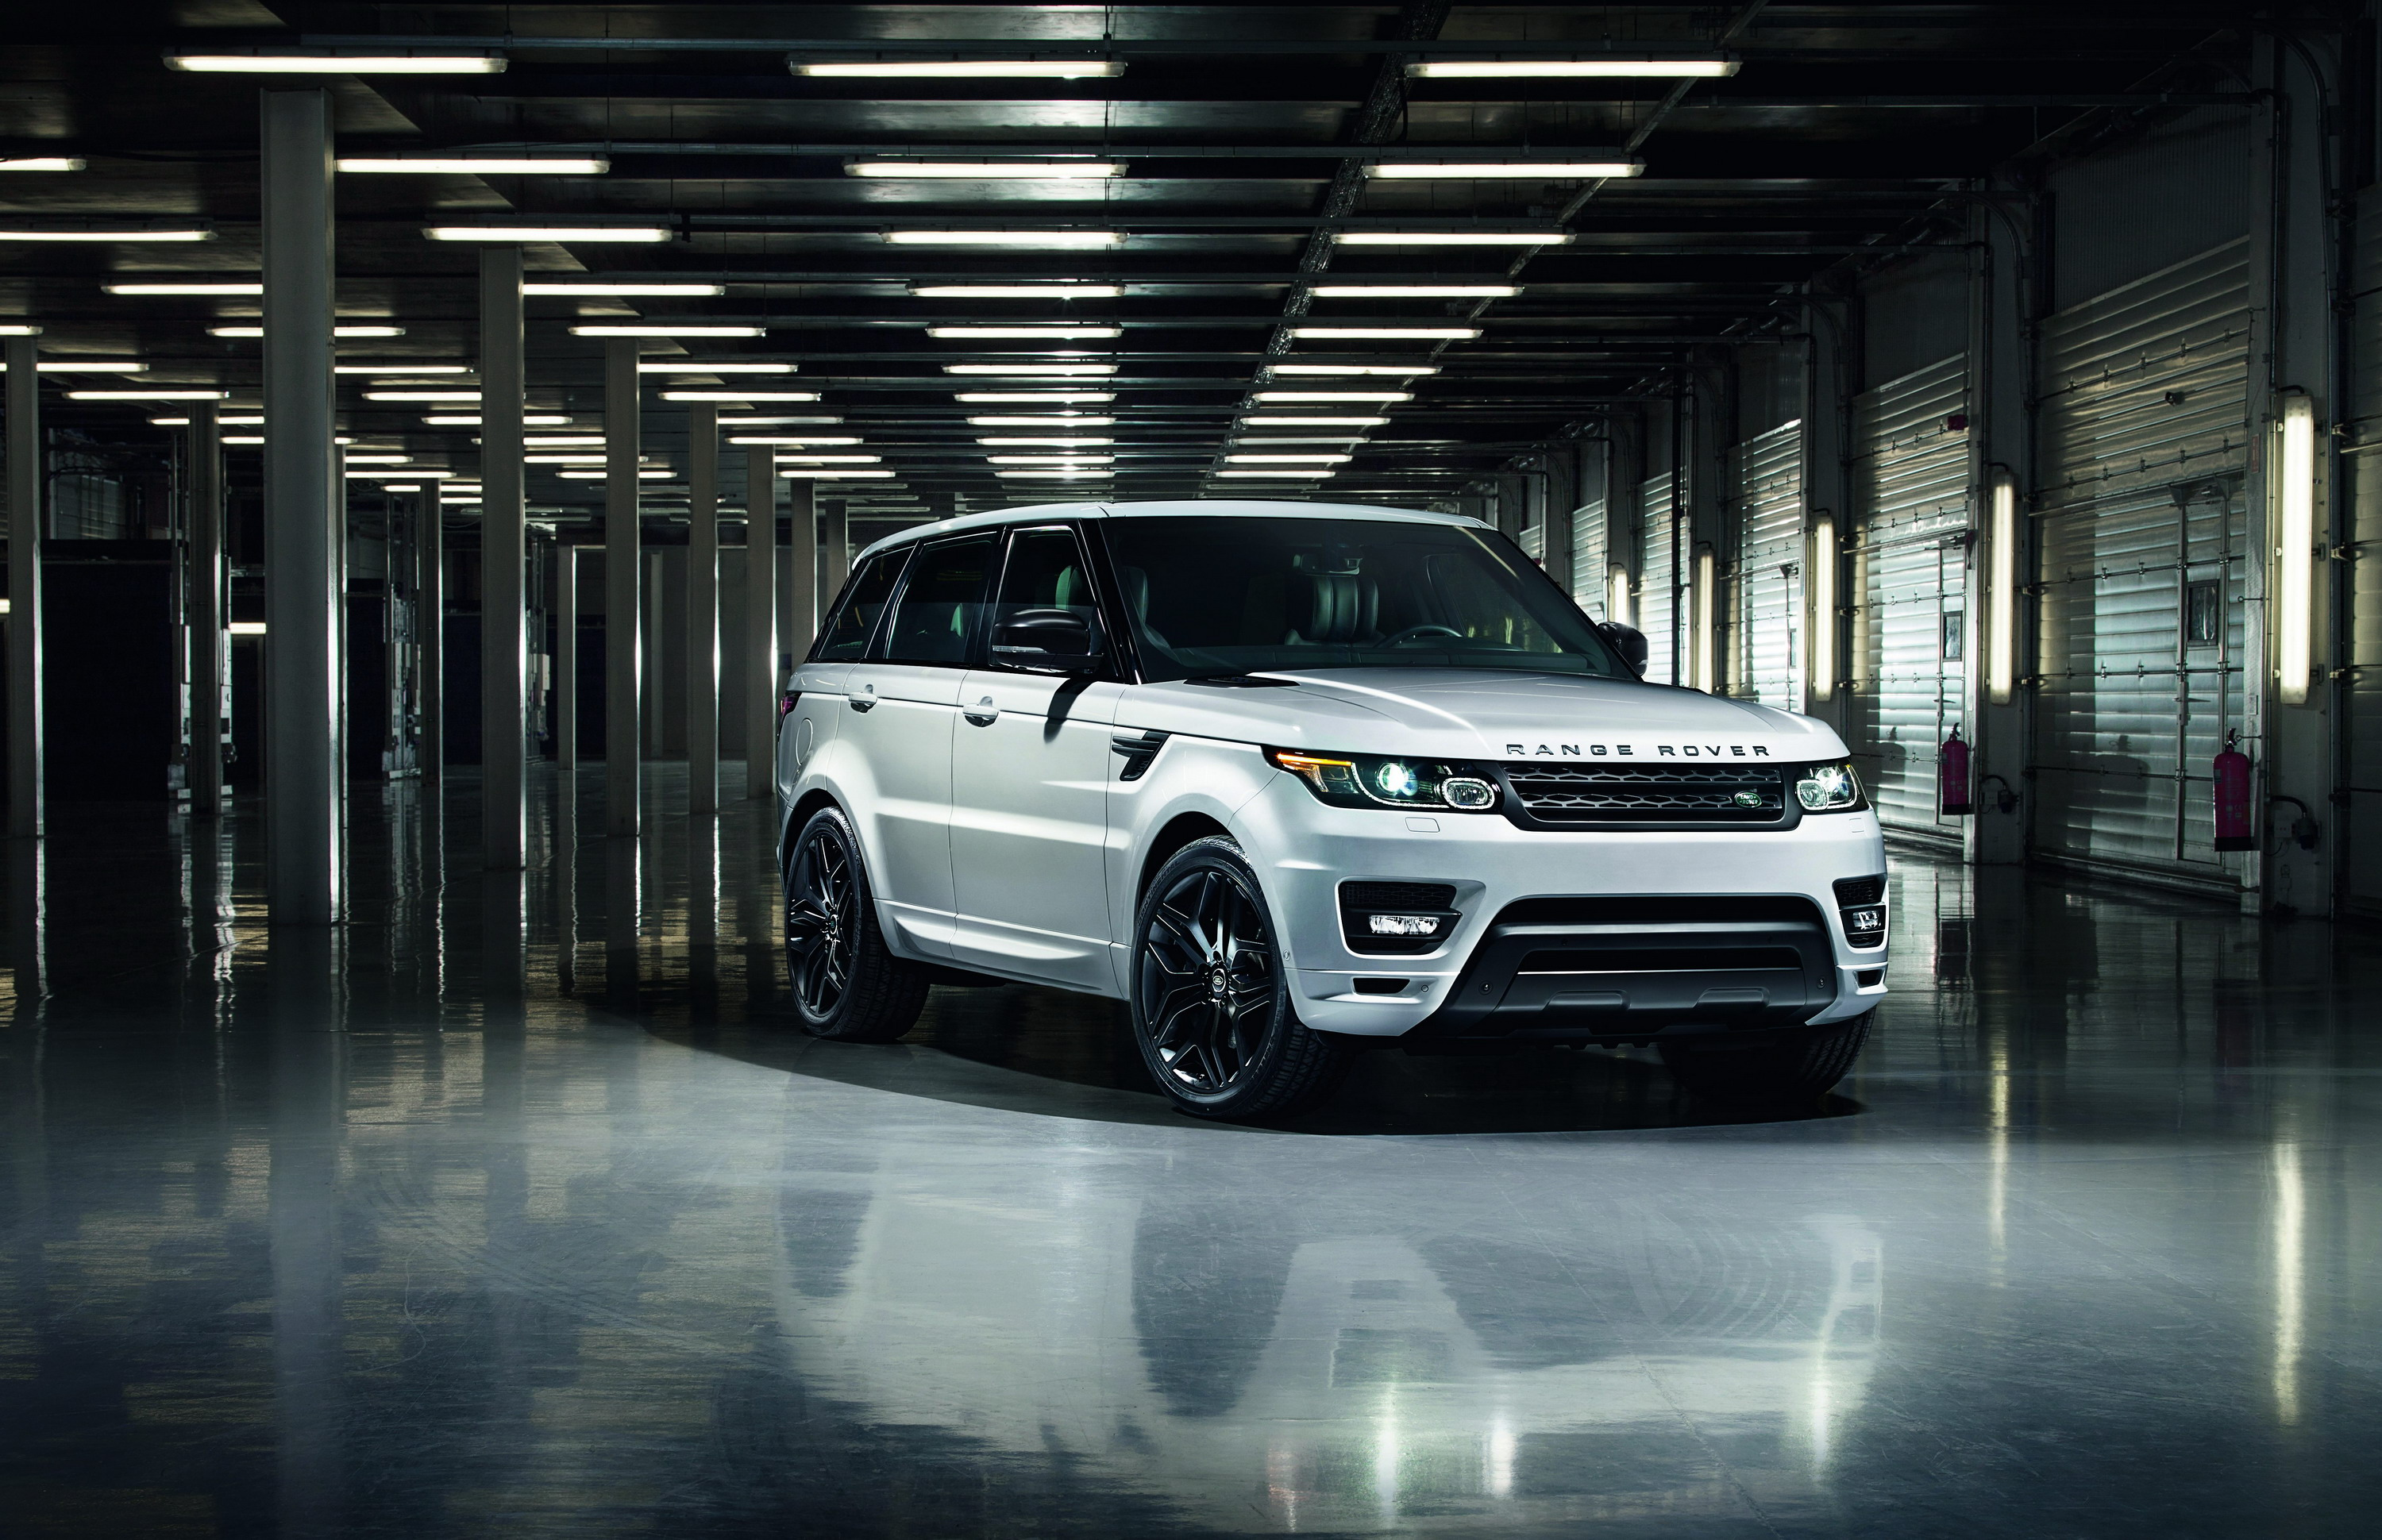 2014 Land Rover Range Rover Sport Stealth Pack Review Gallery